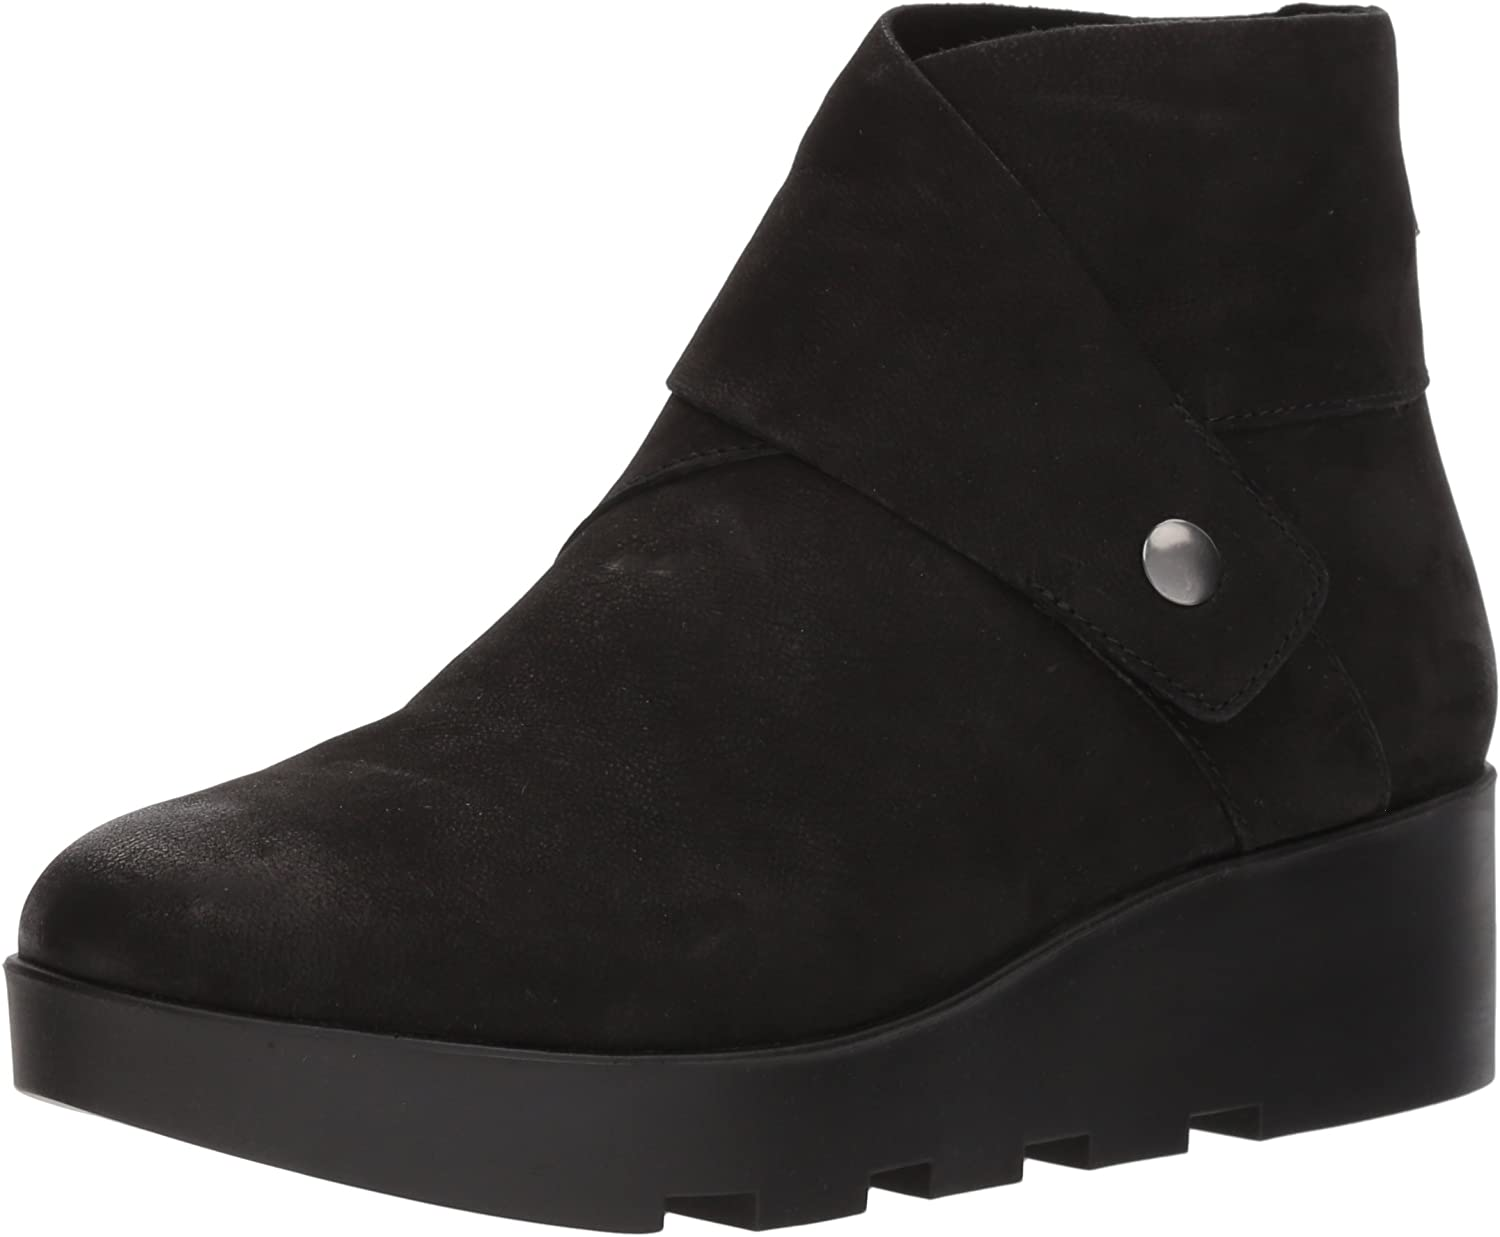 EileenFisher Womens Tread Ankle Boot